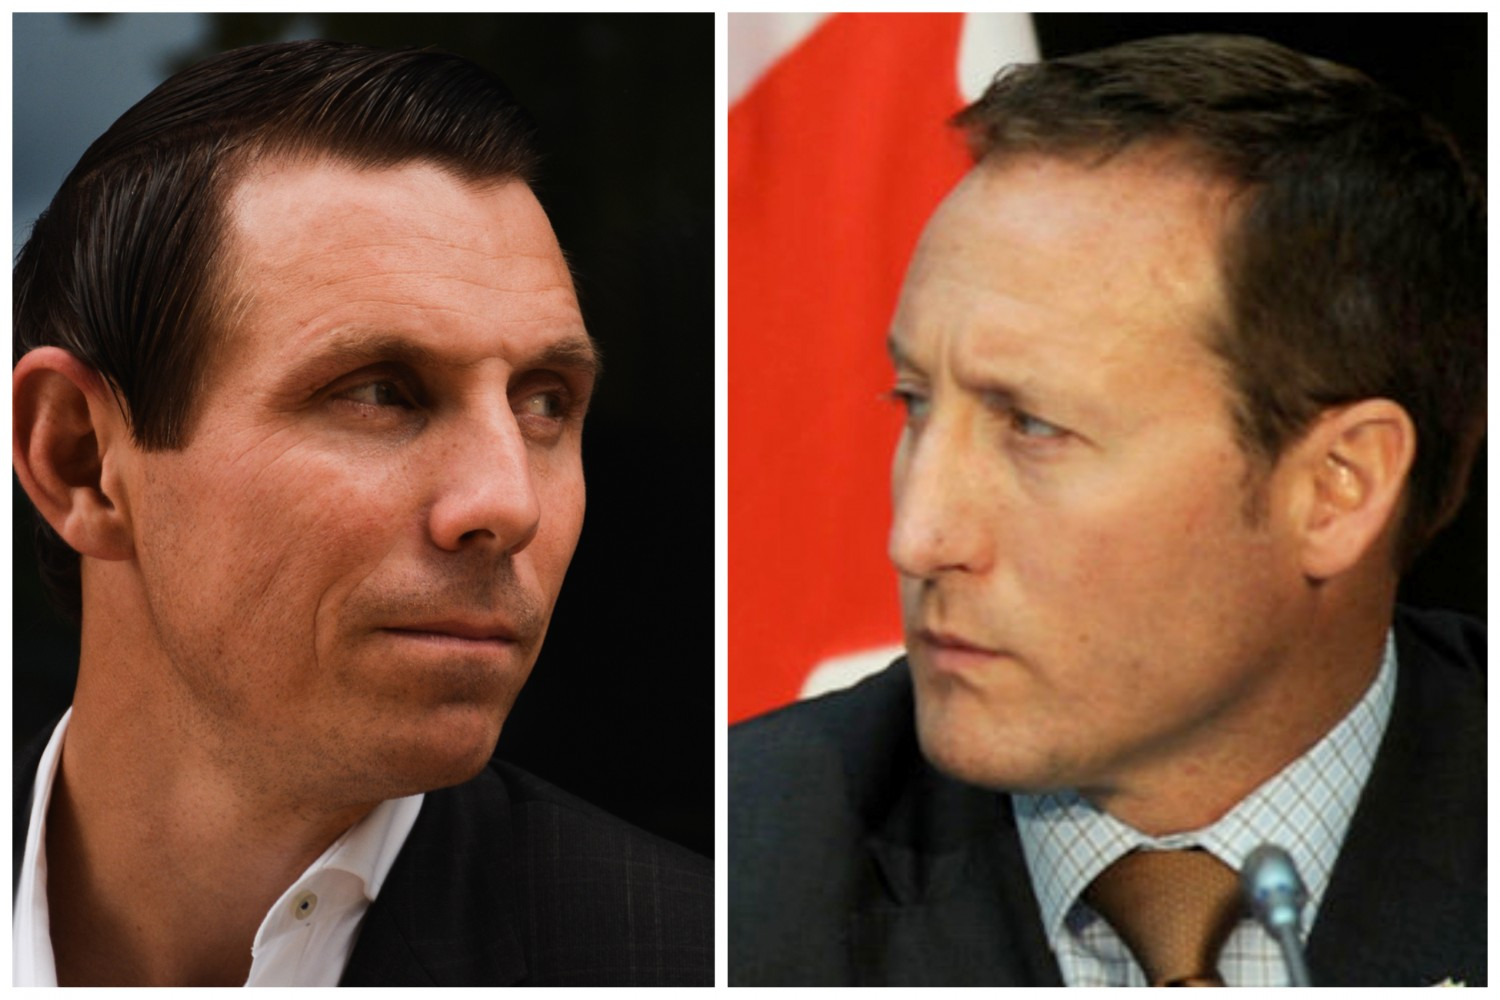 Patrick Brown secretly directed City staff to help Peter MacKay—his firm, Deloitte, handled the investigation into the matter